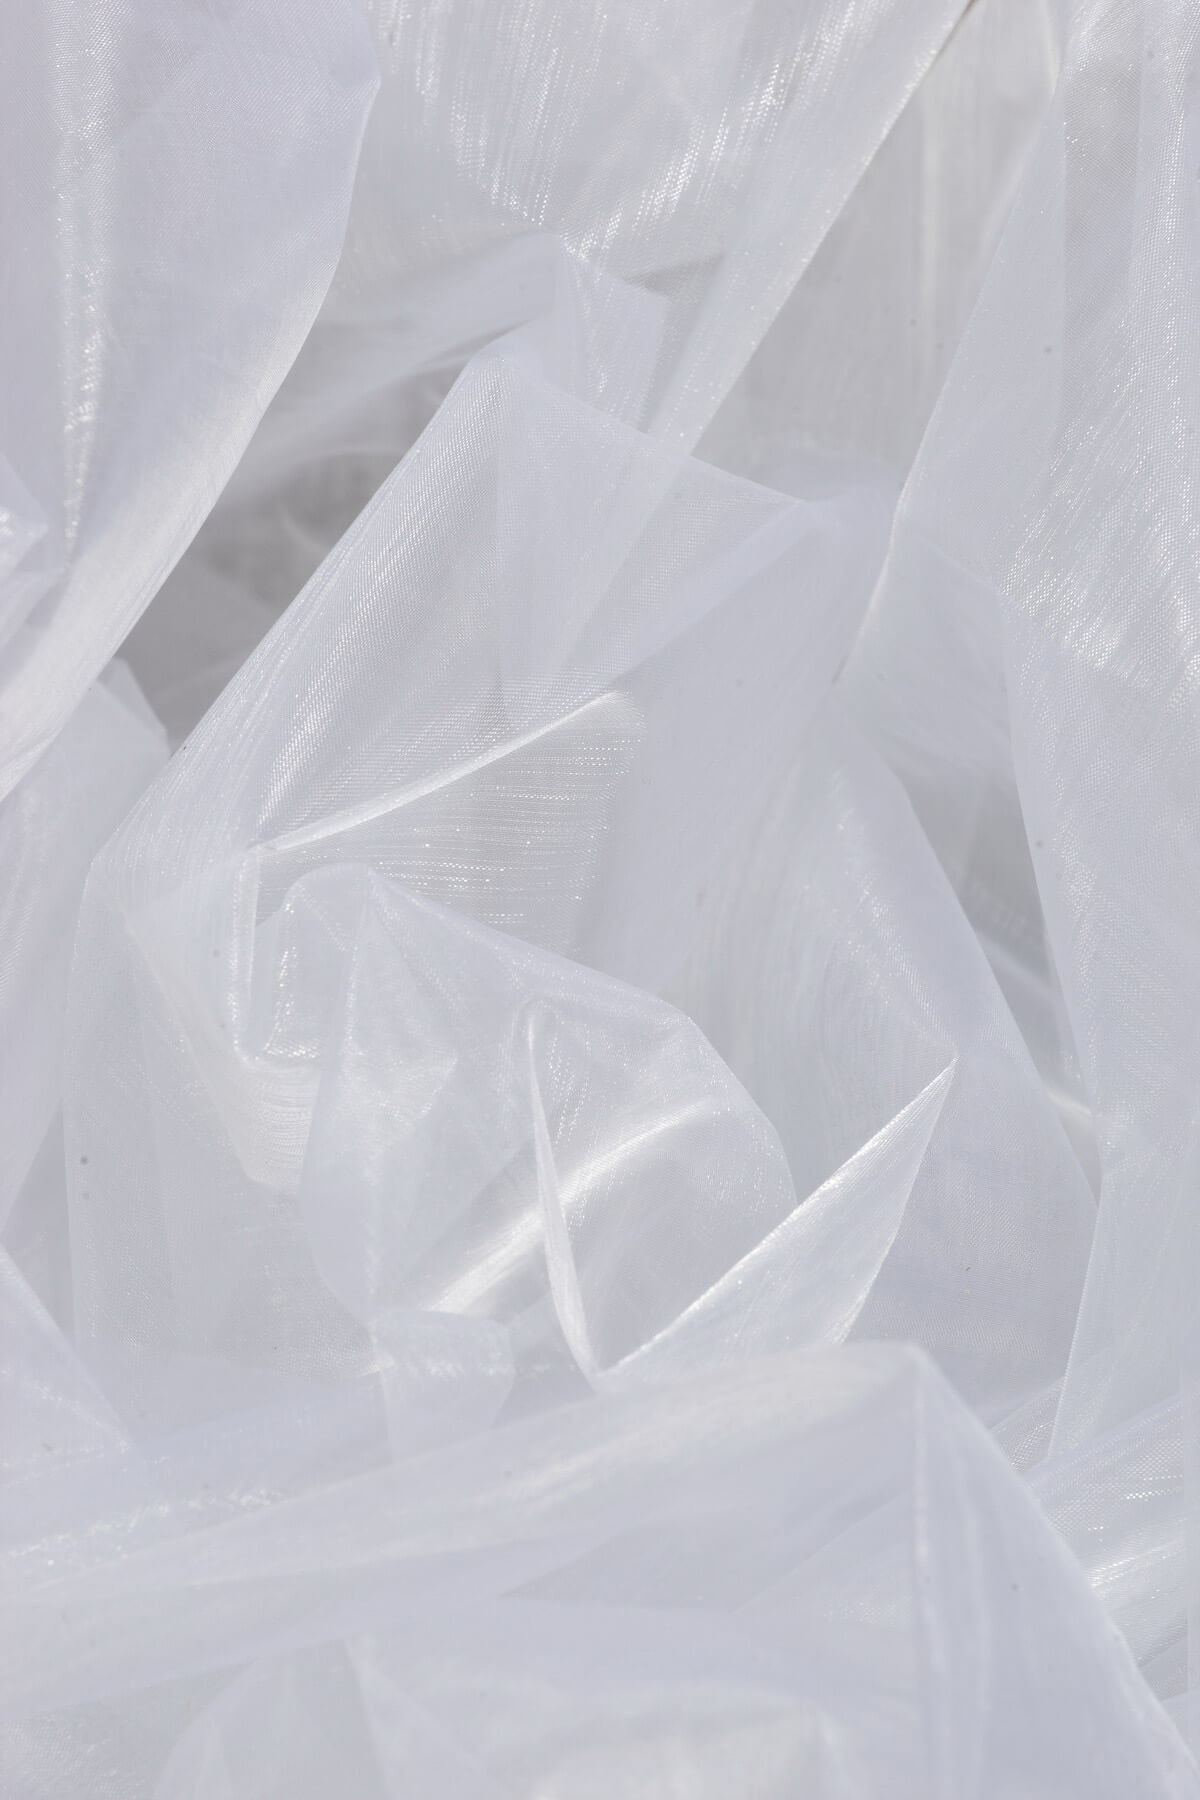 Nautical Home Decor Ideas Organza White 54 Inch X 5yds